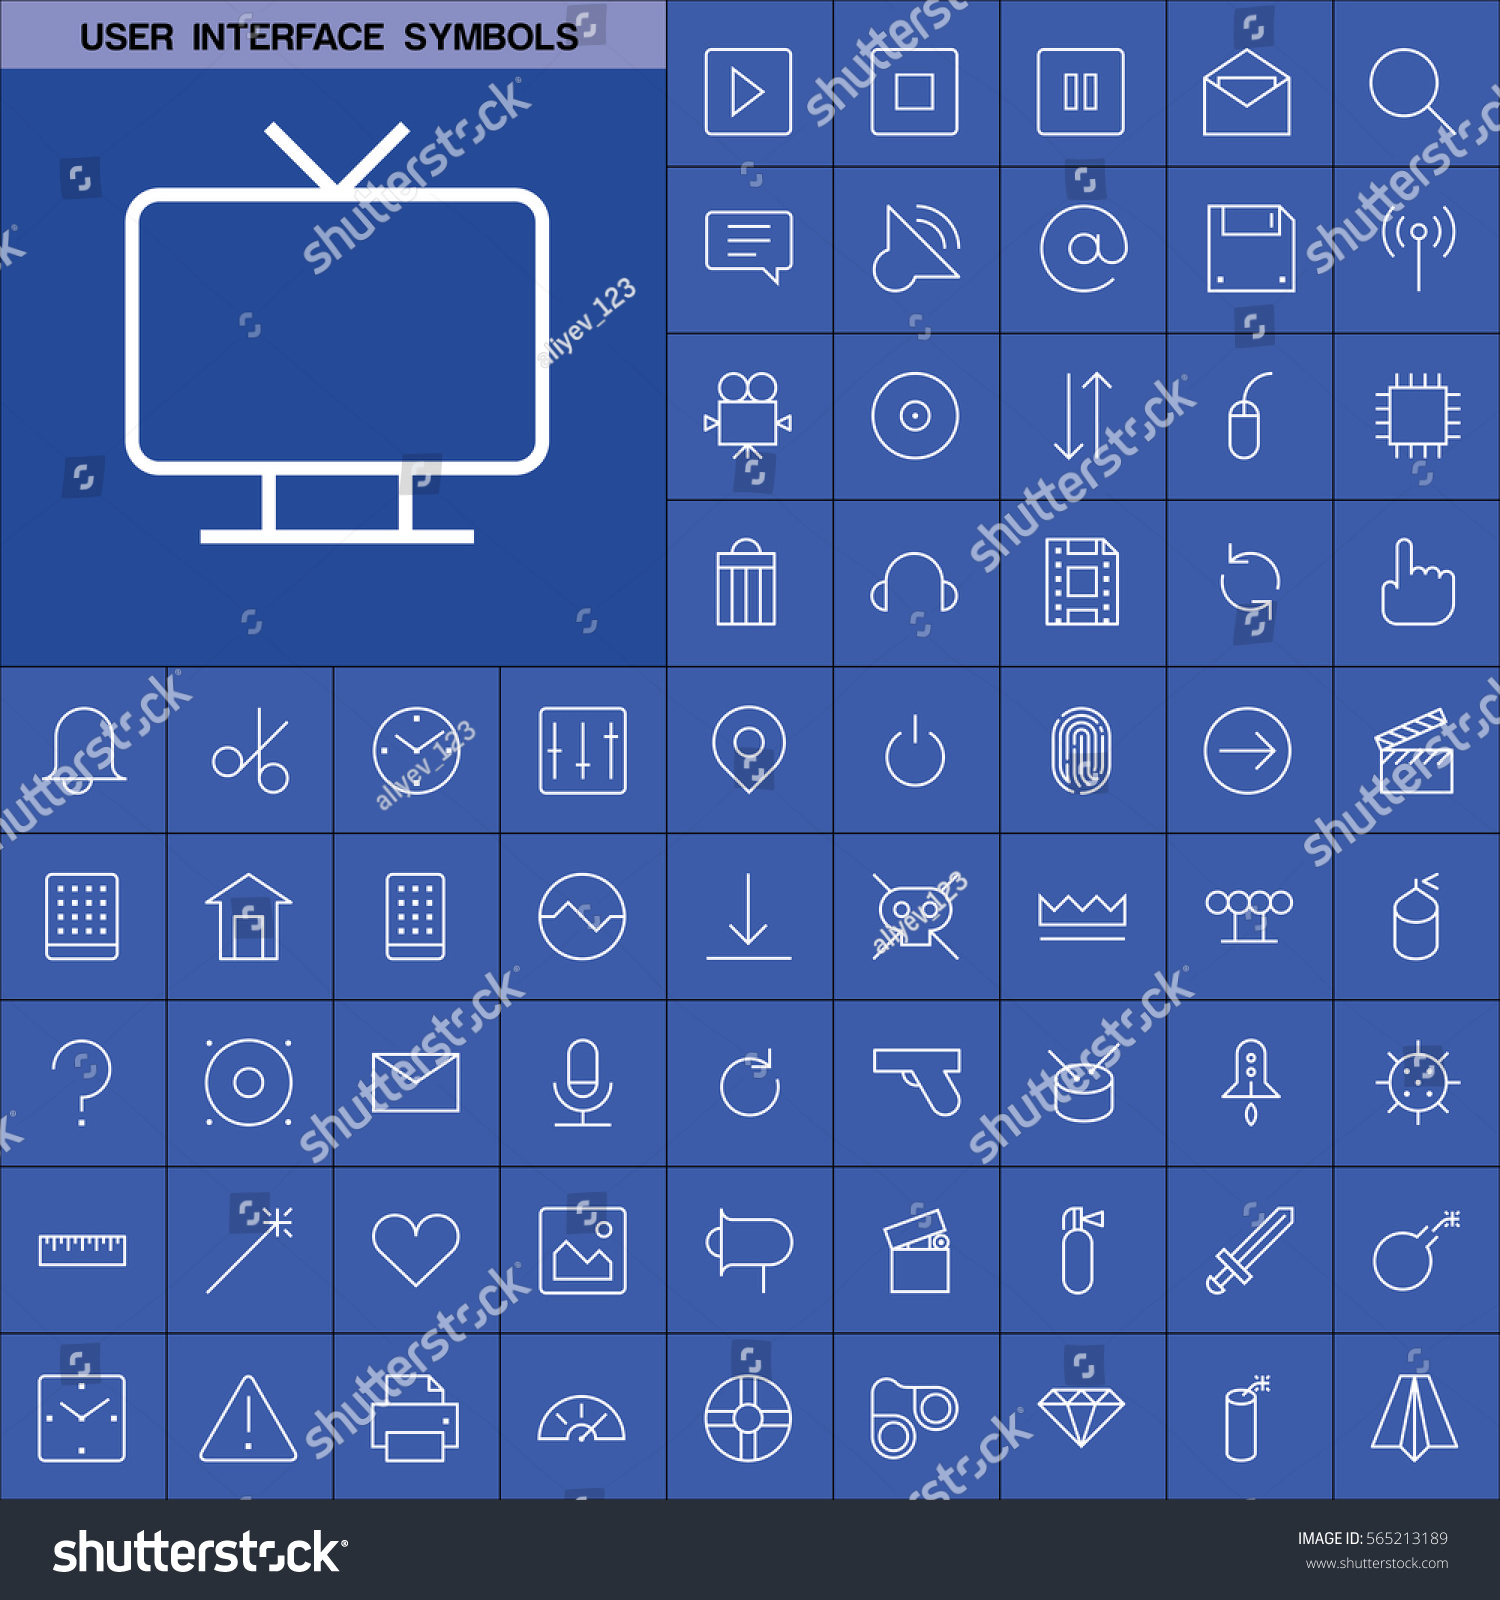 Set user interface symbols icons contains stock vector 565213189 set of user interface symbols icons contains such icons as videocamera location pin buycottarizona